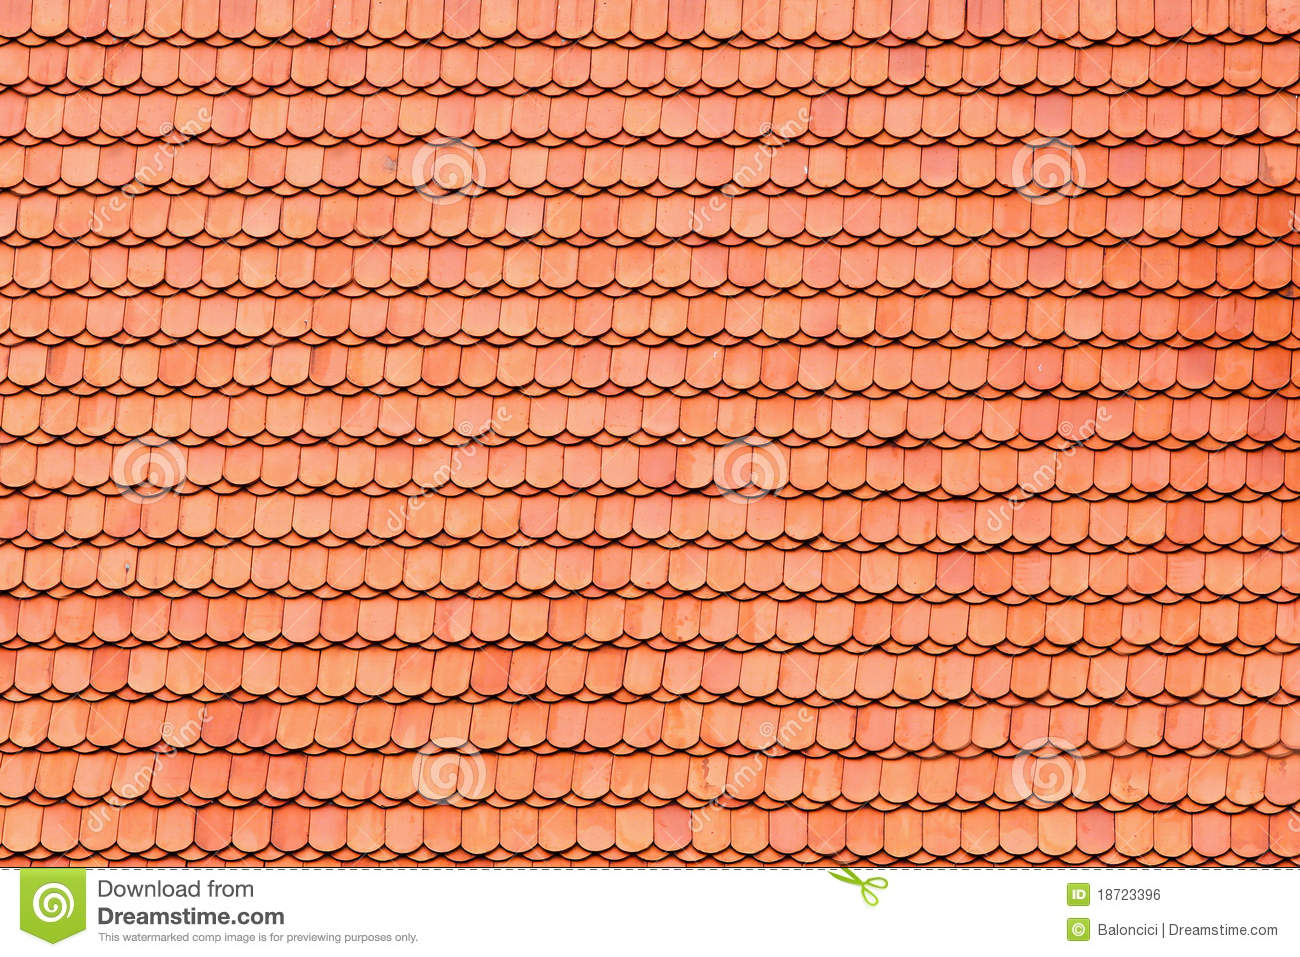 Roof tile pattern royalty free stock image image 18723396 for Roof tile patterns